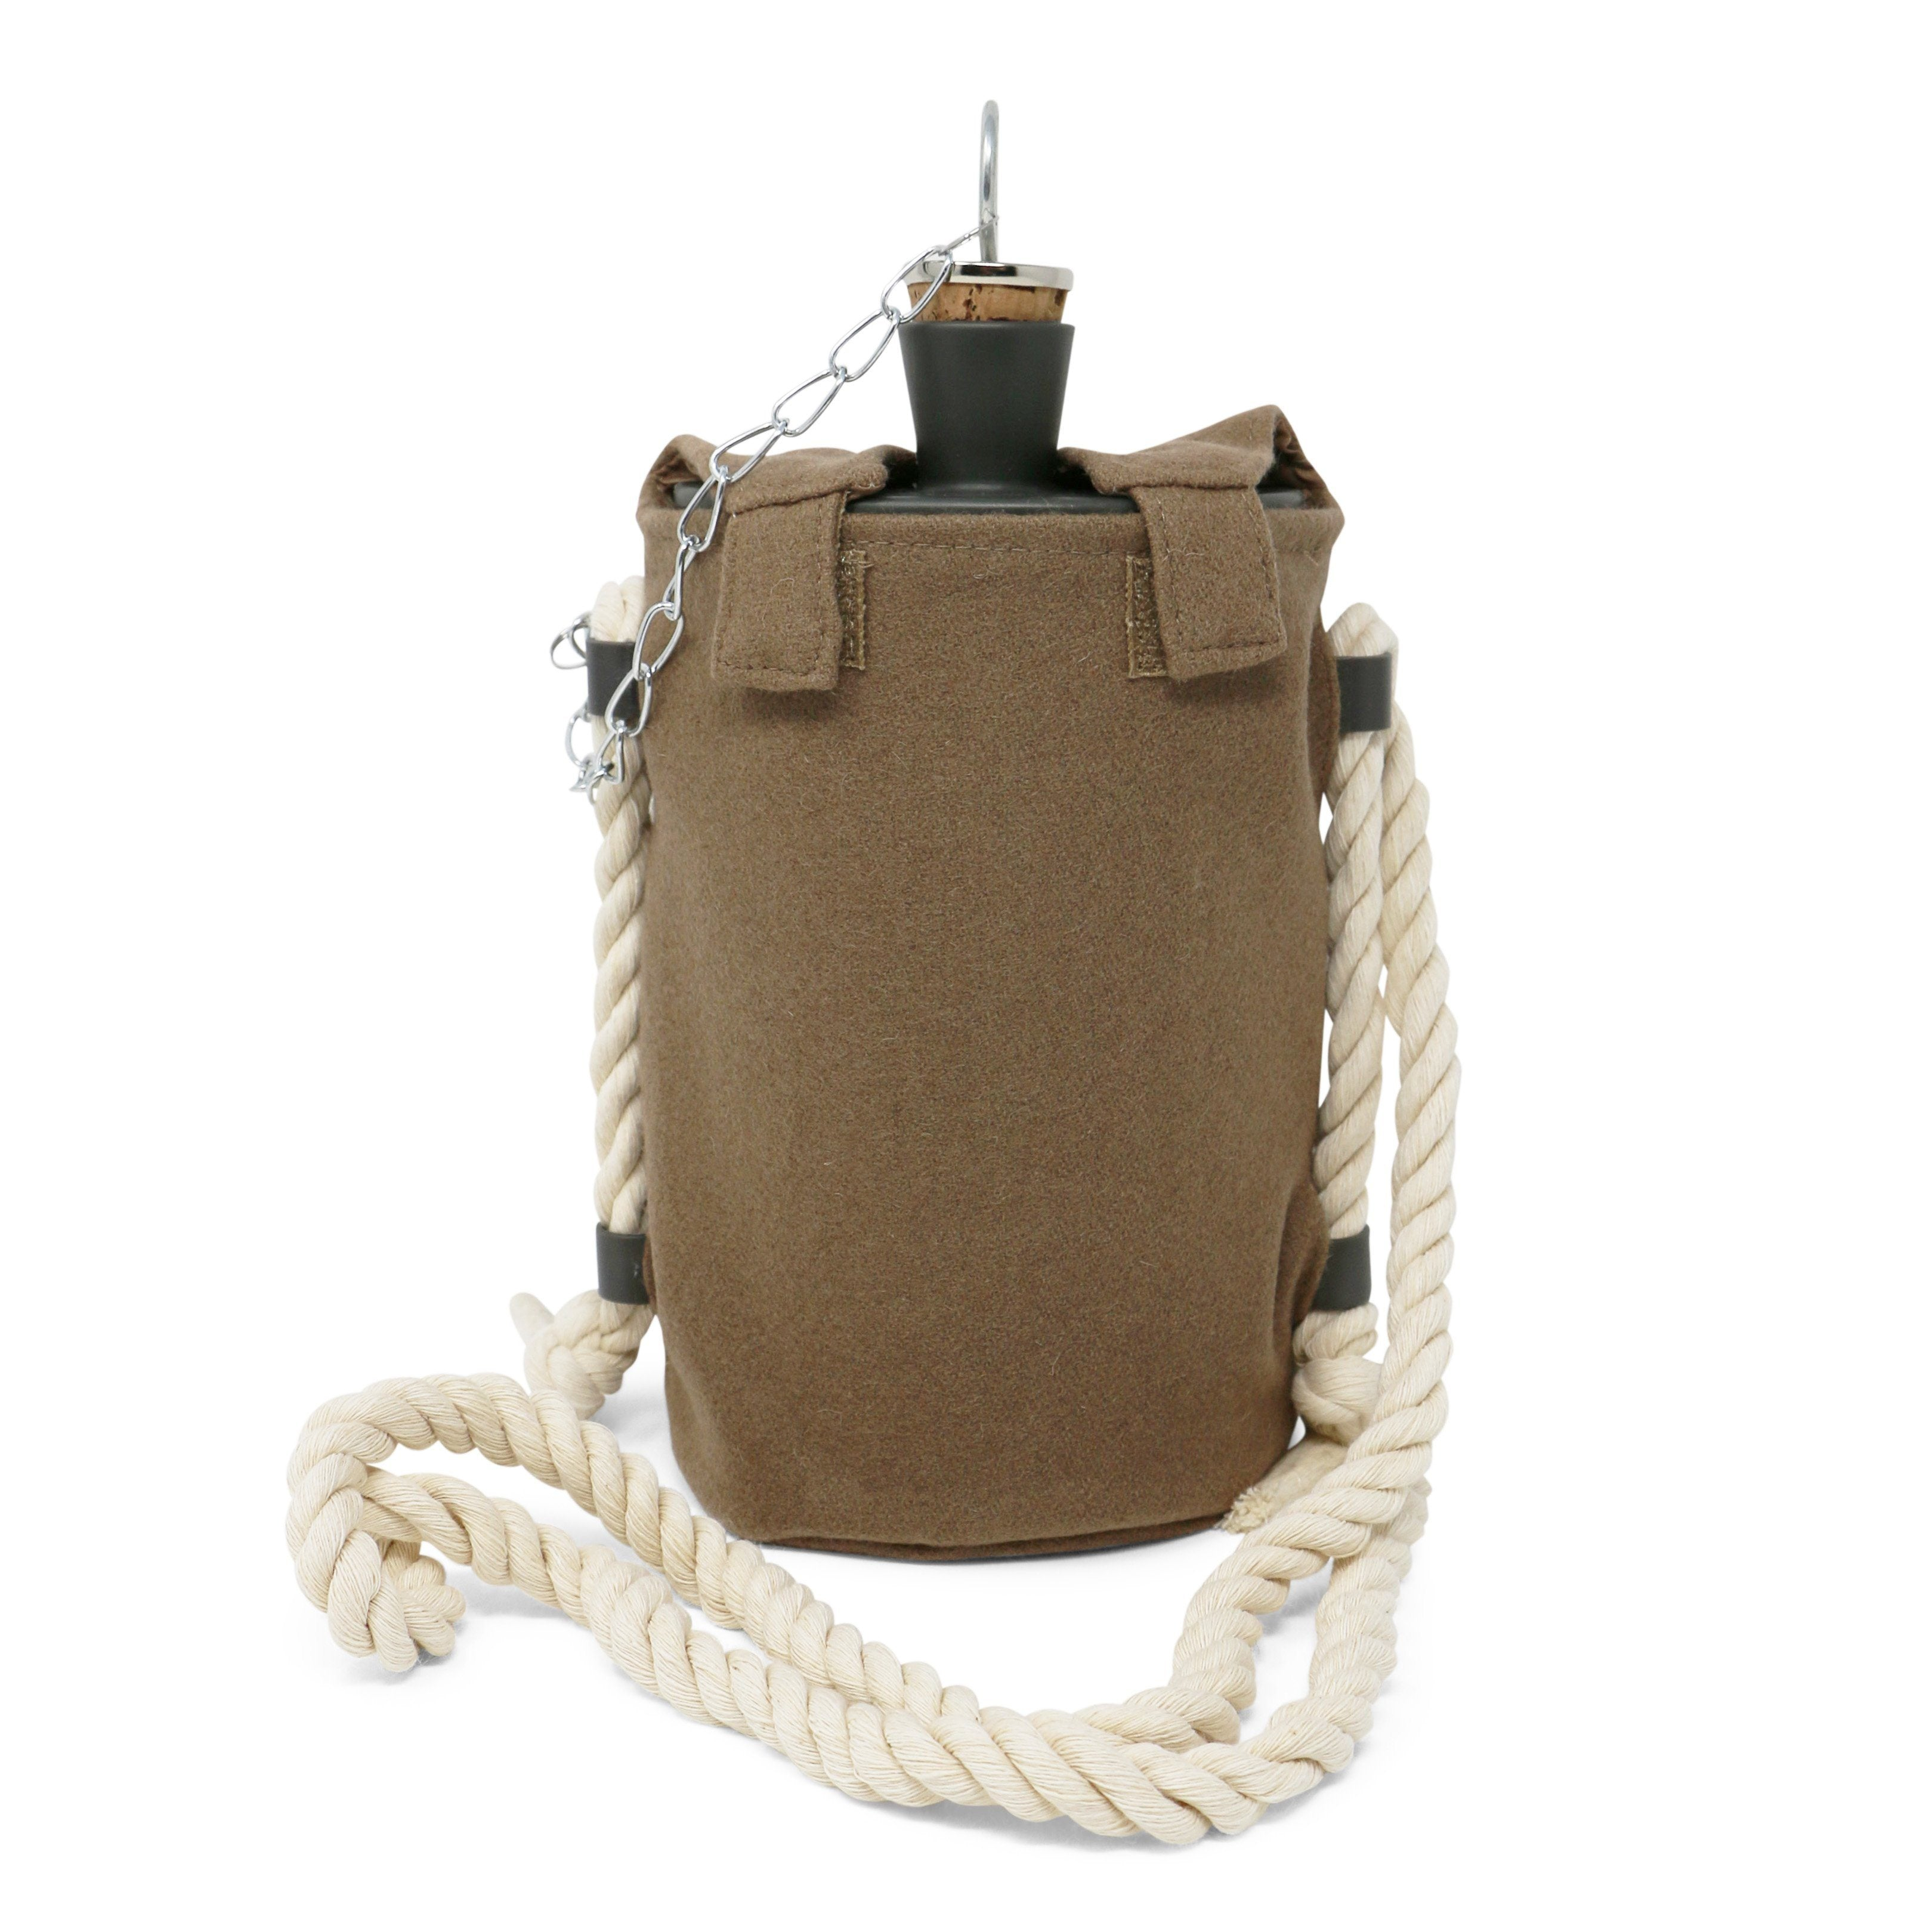 Revolutionary Soldier Canteen